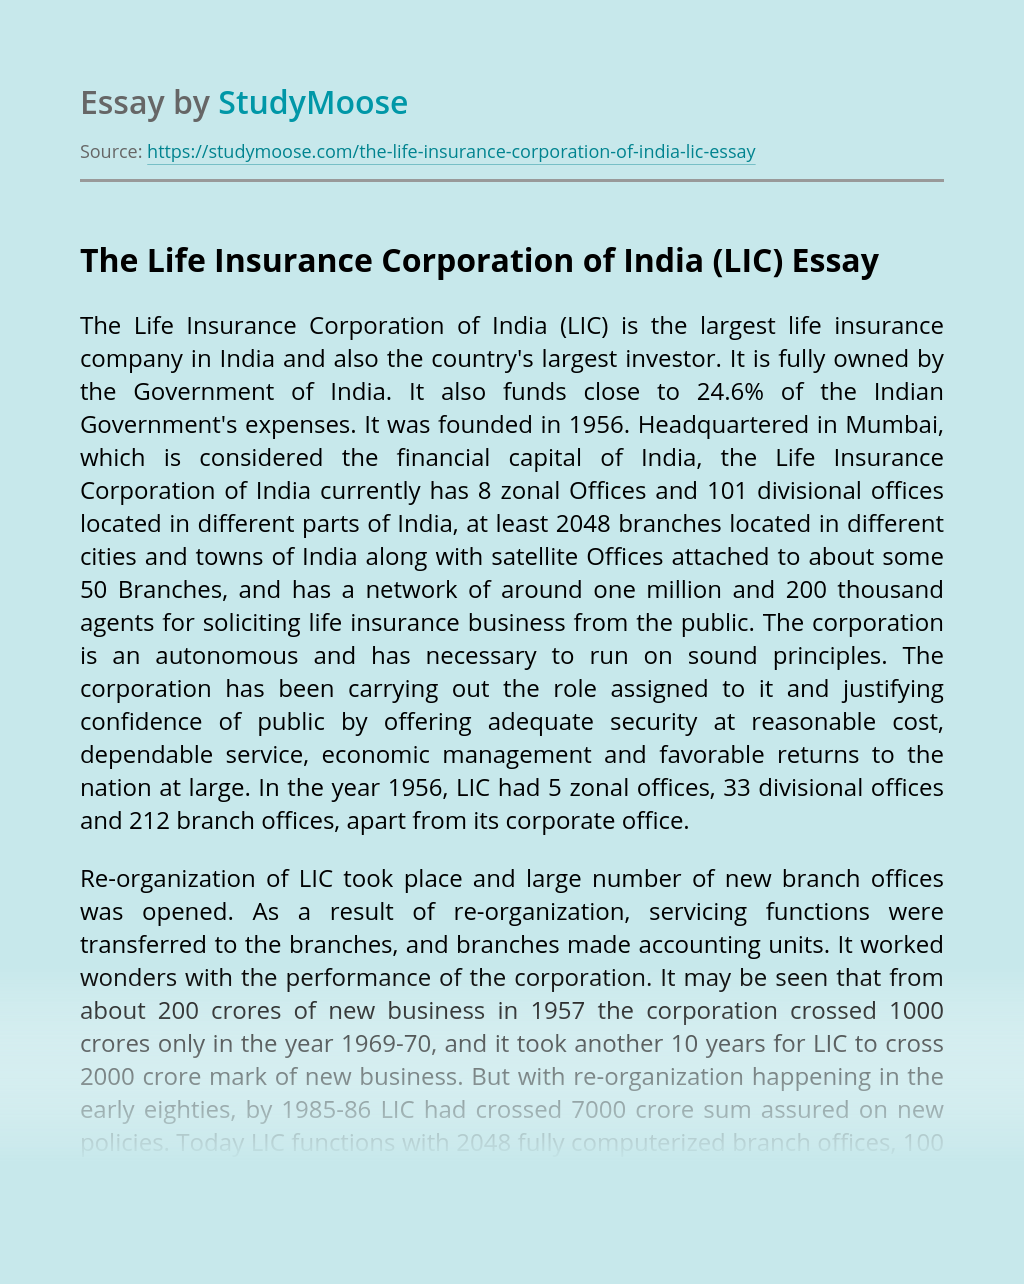 The Life Insurance Corporation of India (LIC)